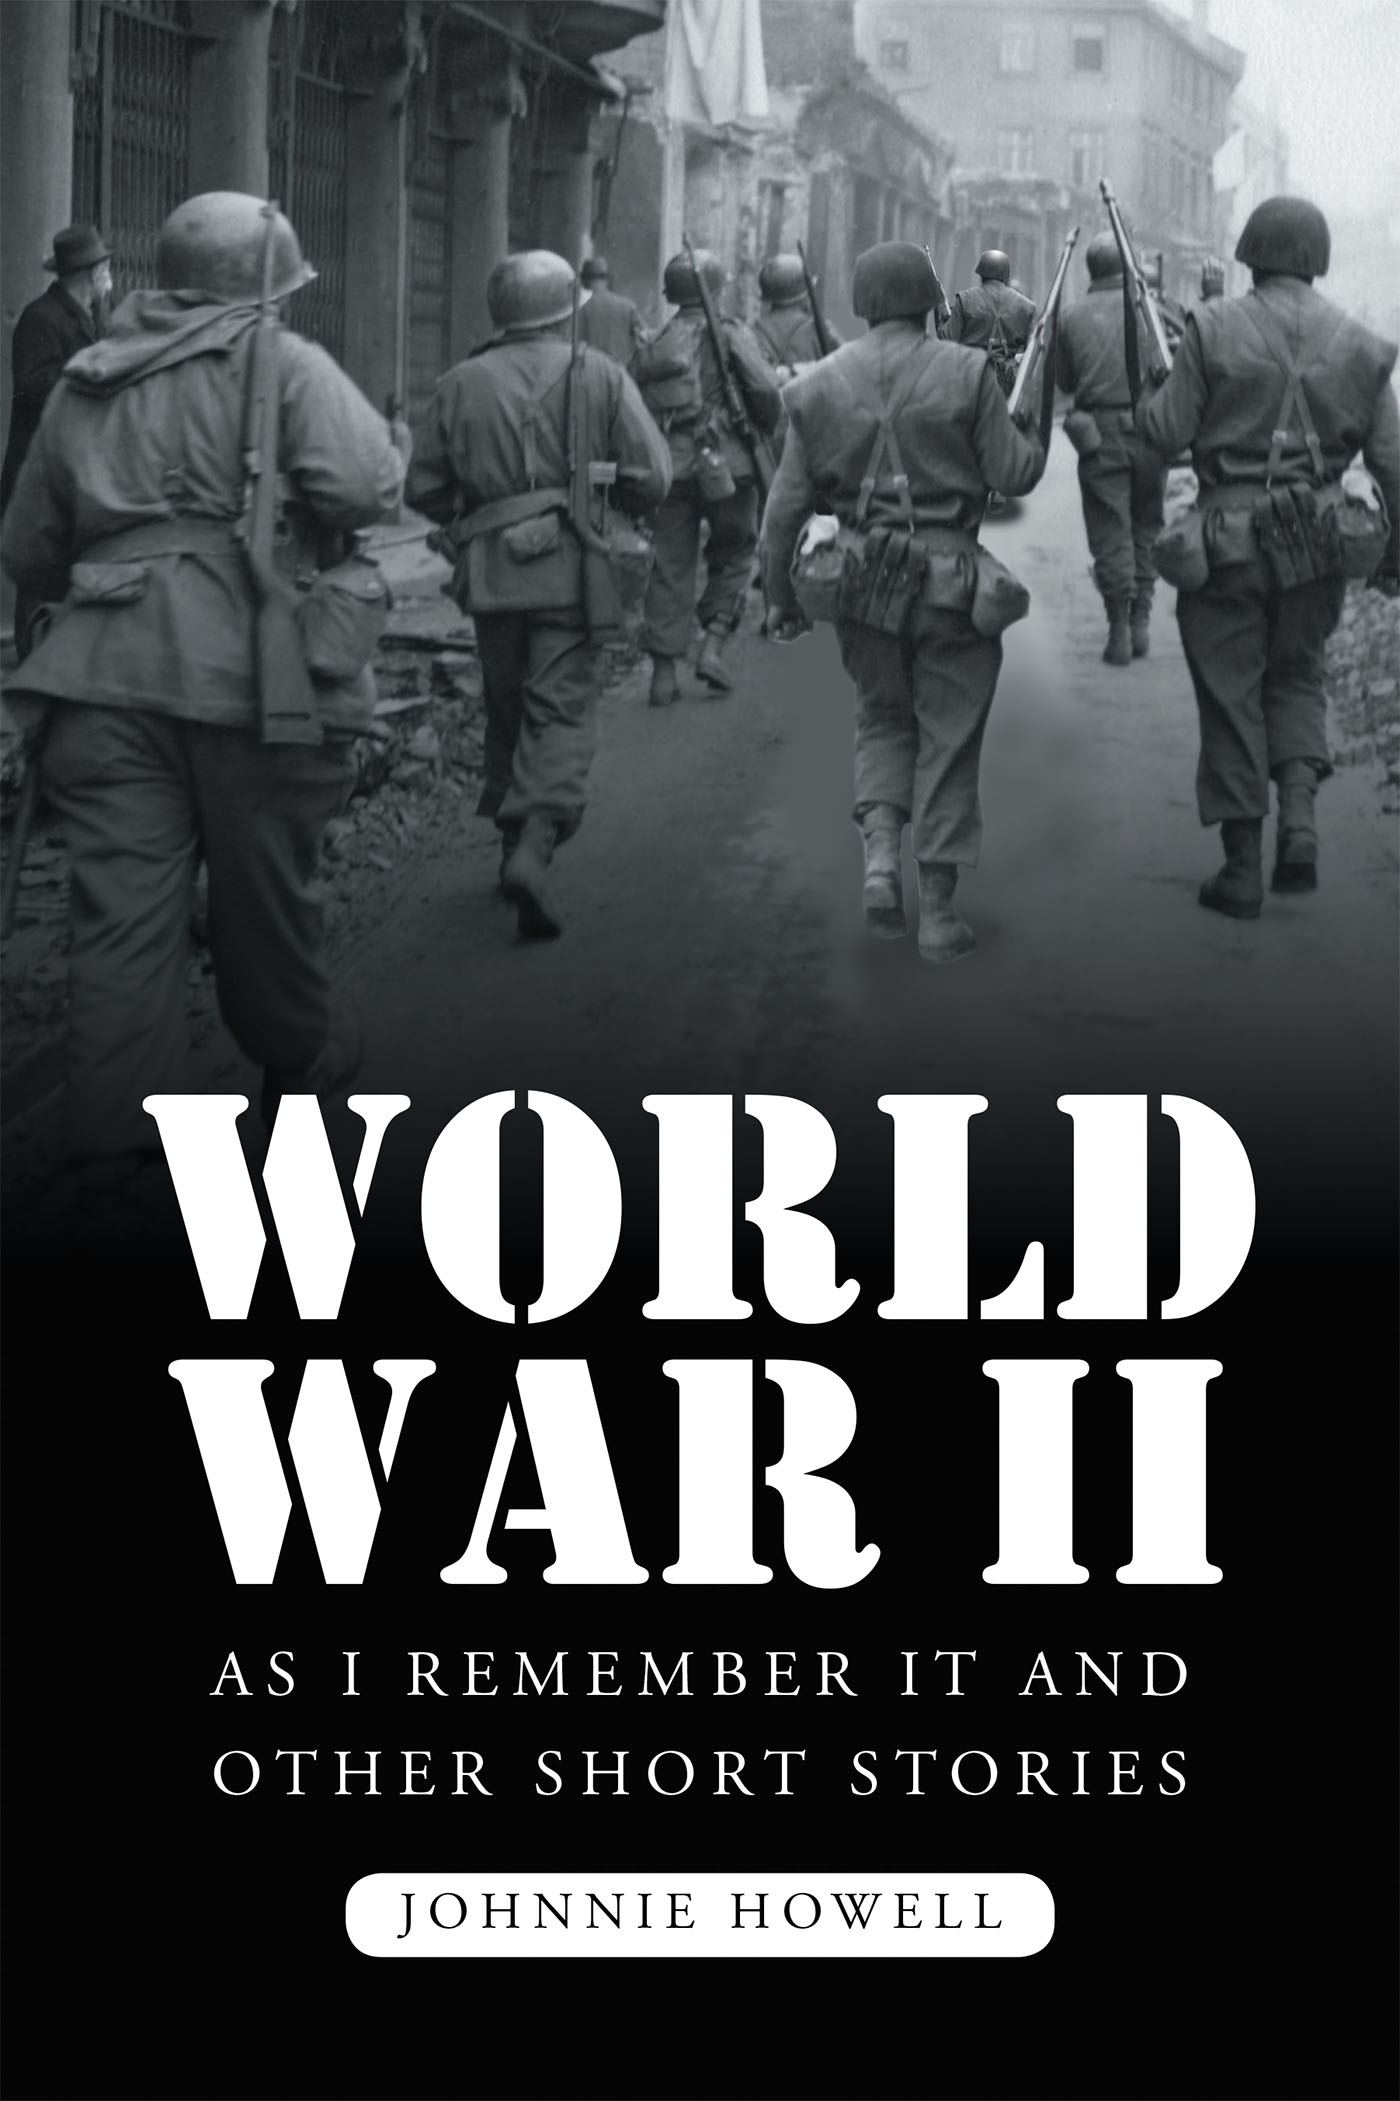 world war ii short story But the veteran's desire to tell his story overcame time in world war ii (jaywestcott for the washington post) written several books about world war ii.